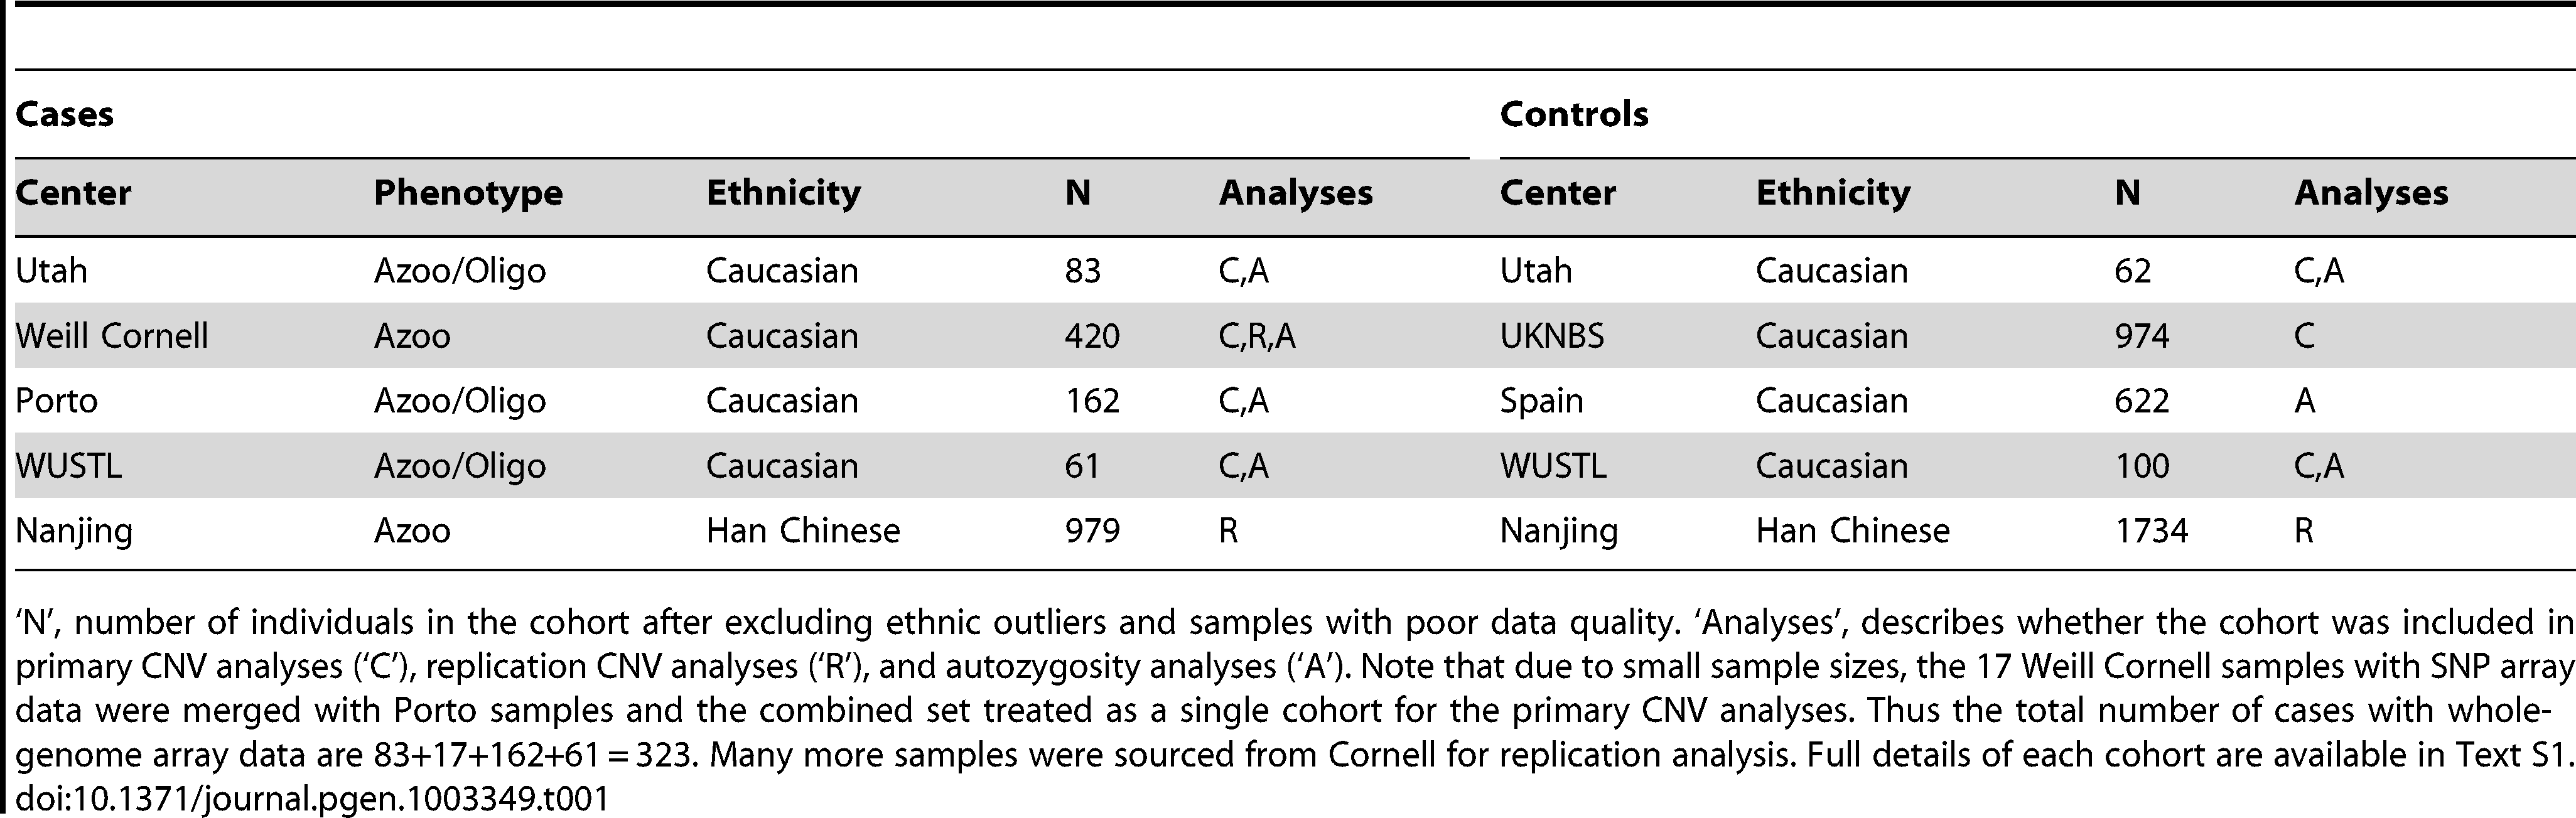 Case and control cohorts used in the study.